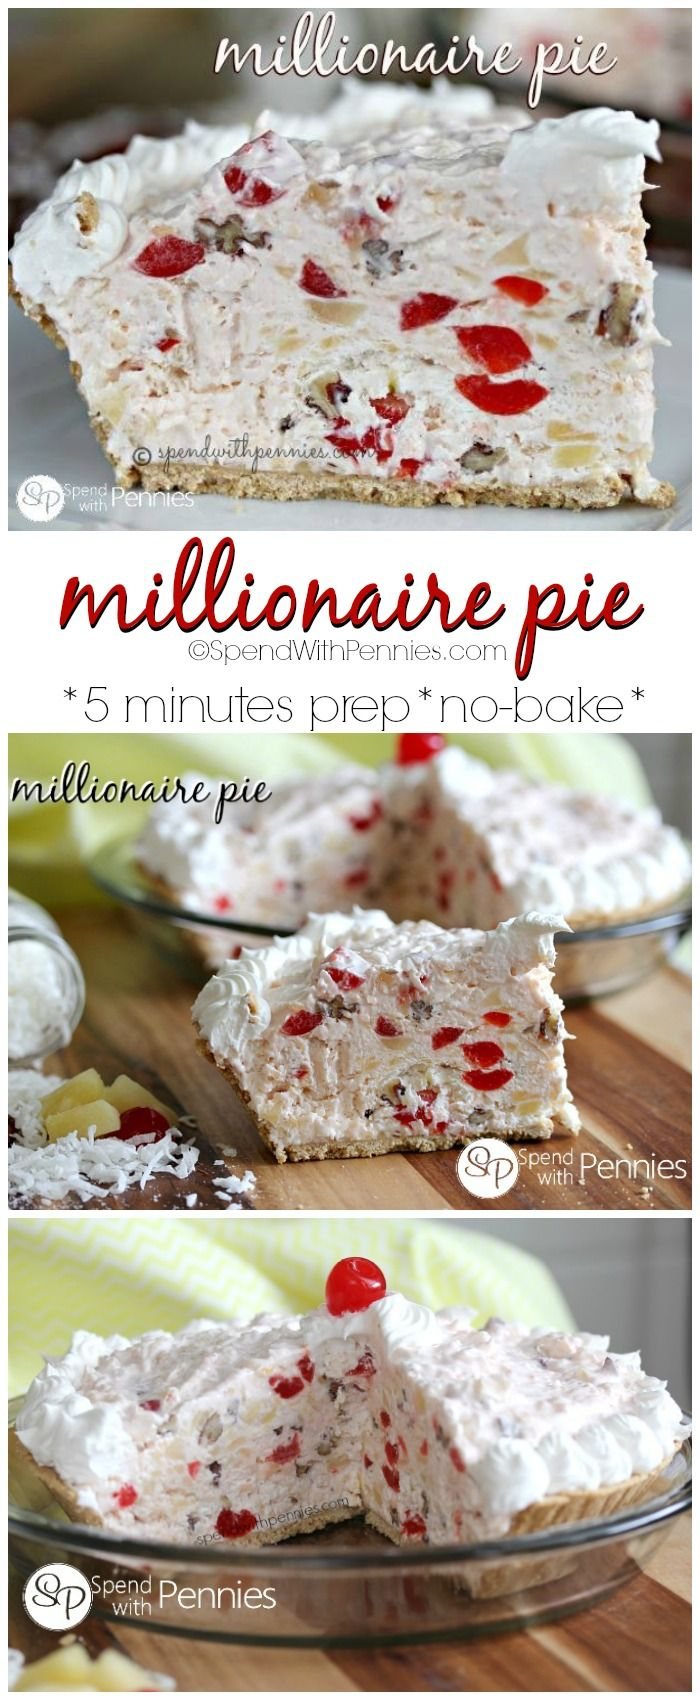 Millionaire Pie!  This easy pie is one of my favorite NO BAKE desserts! (Christmas Bake Desserts)